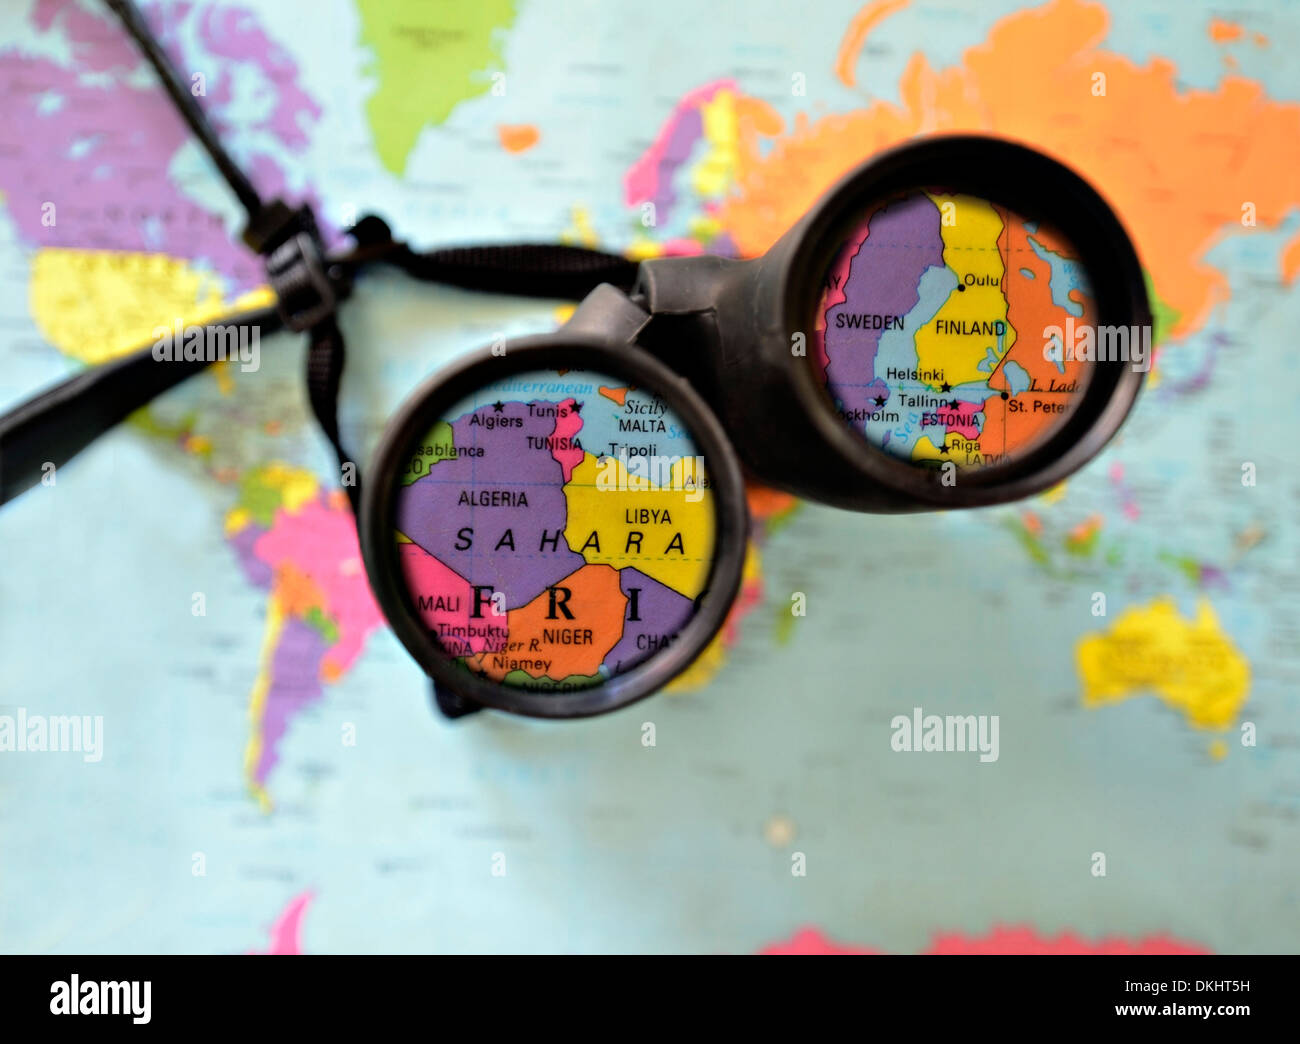 A pair of binoculars on top of a world map countries highlighted in a pair of binoculars on top of a world map countries highlighted in the lens gumiabroncs Gallery